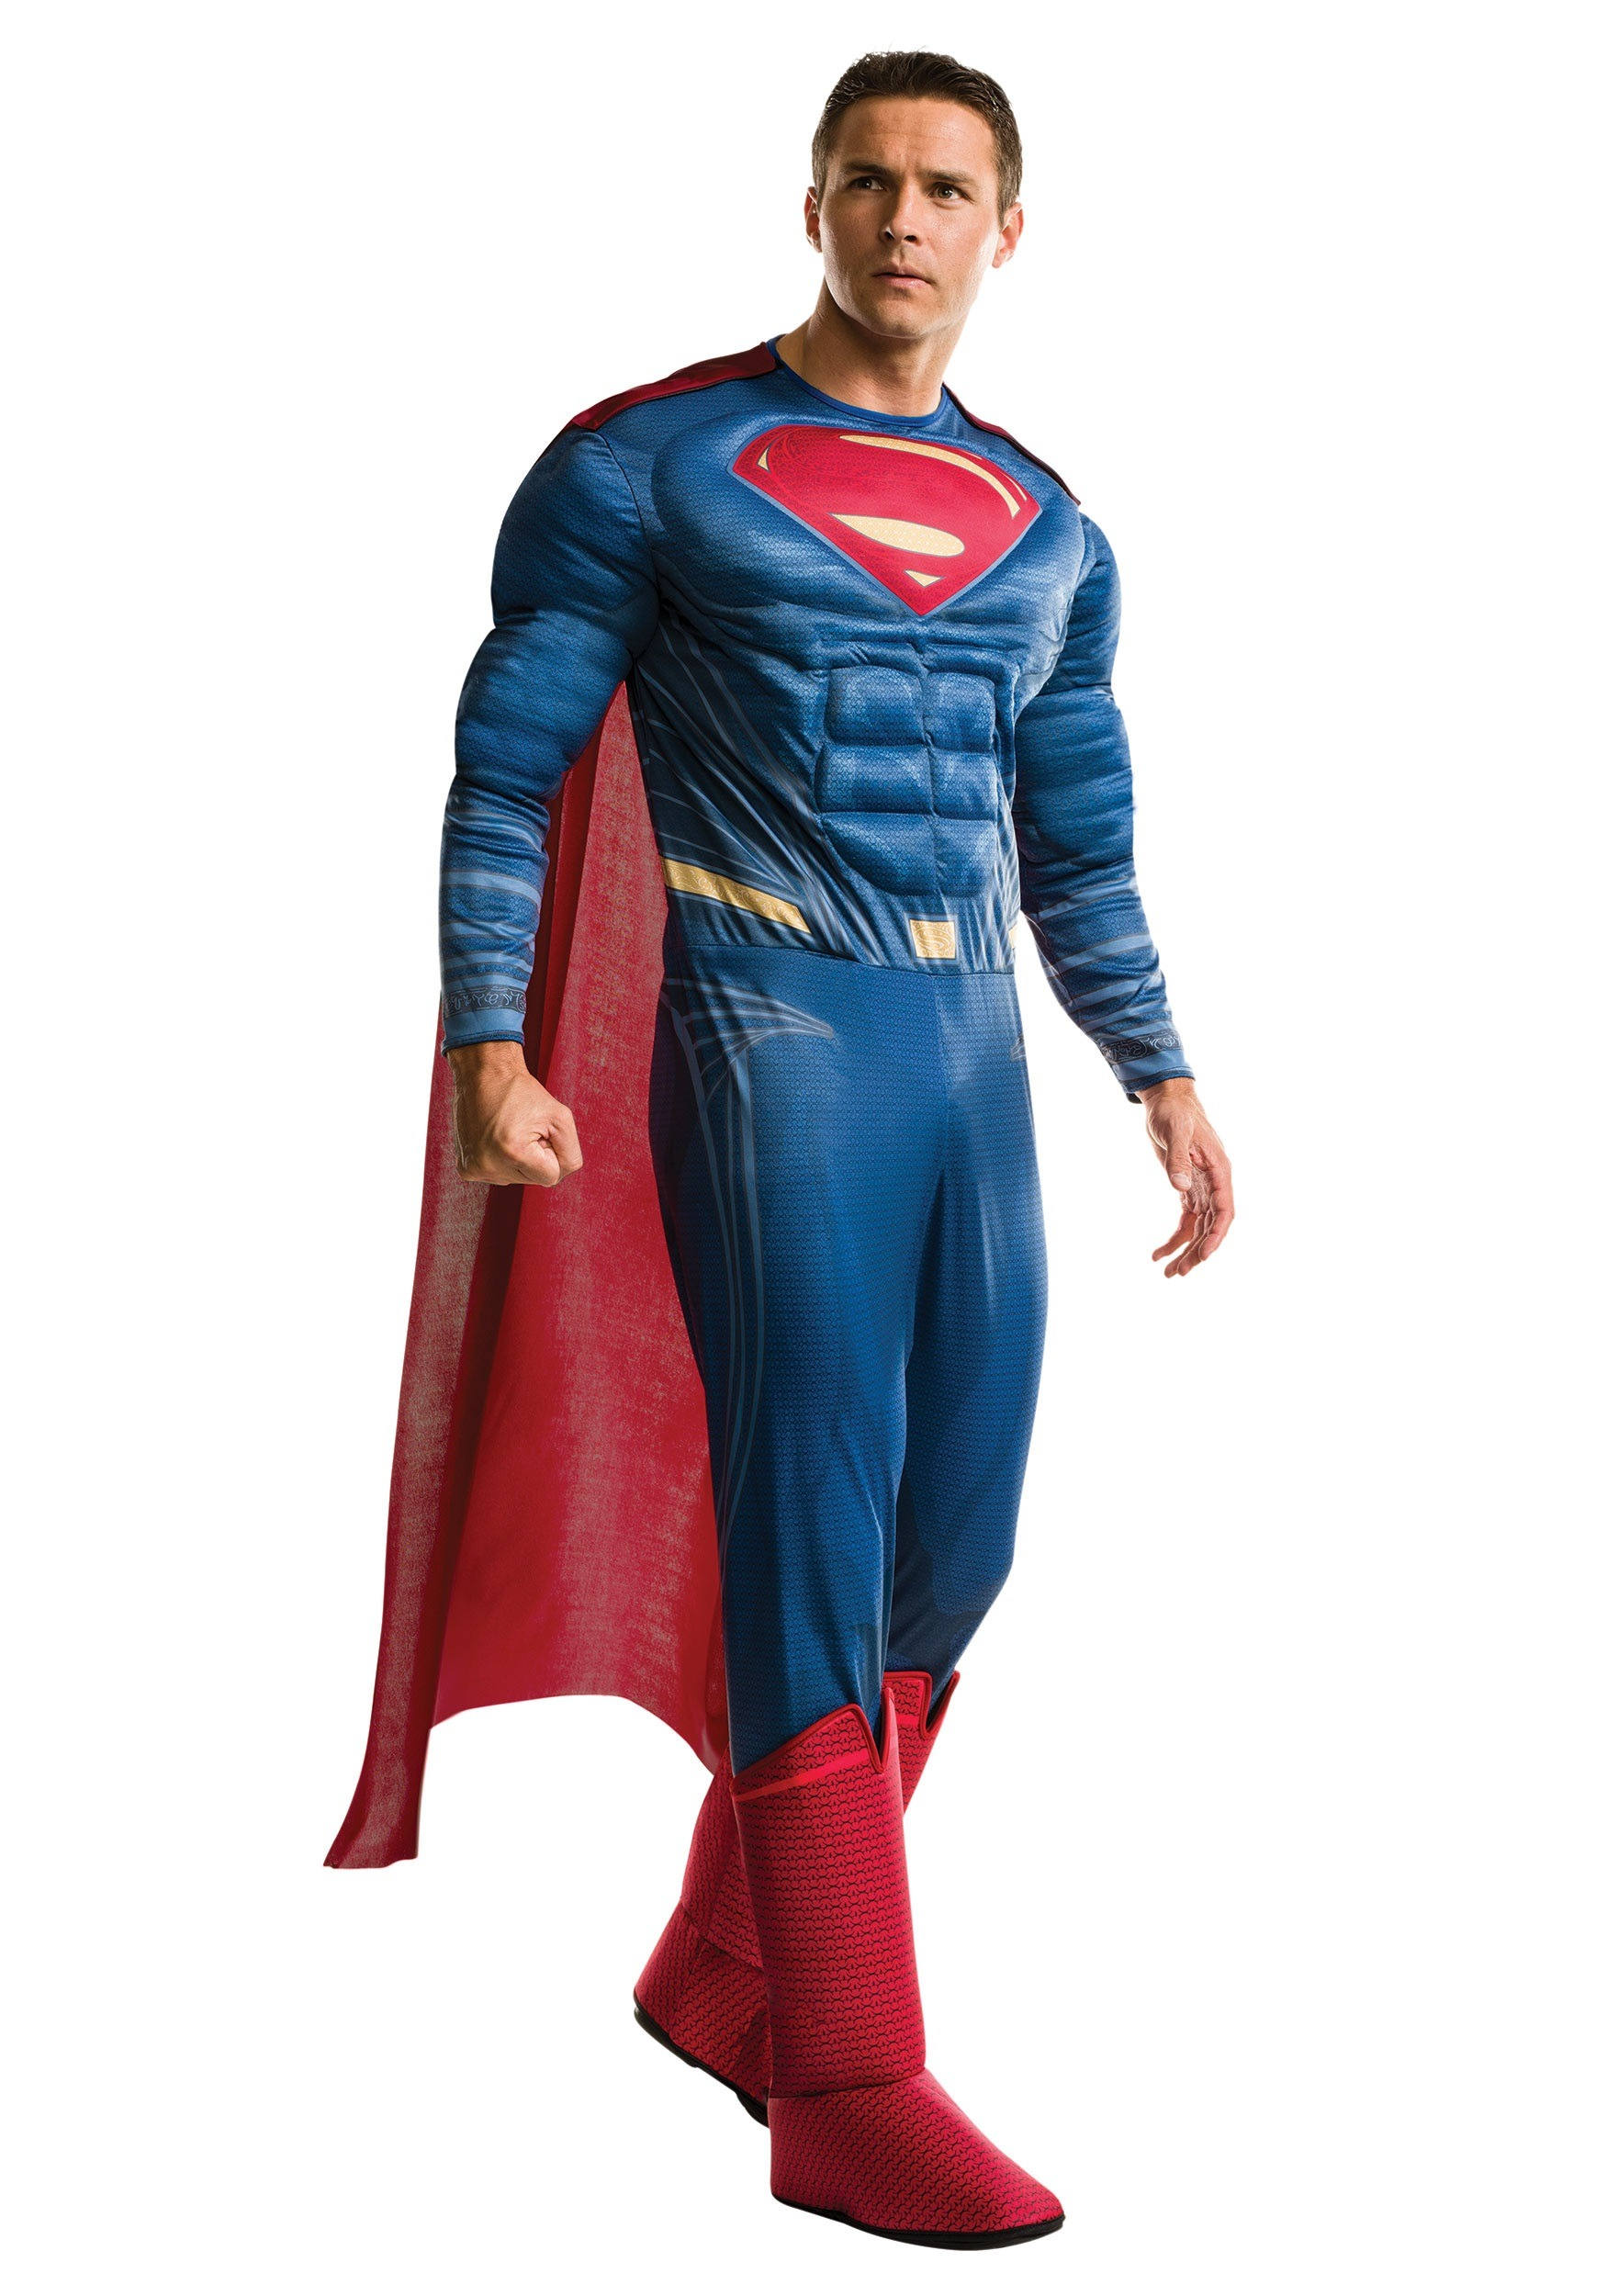 Deluxe Adult Dawn of Justice Superman Costume RU810925